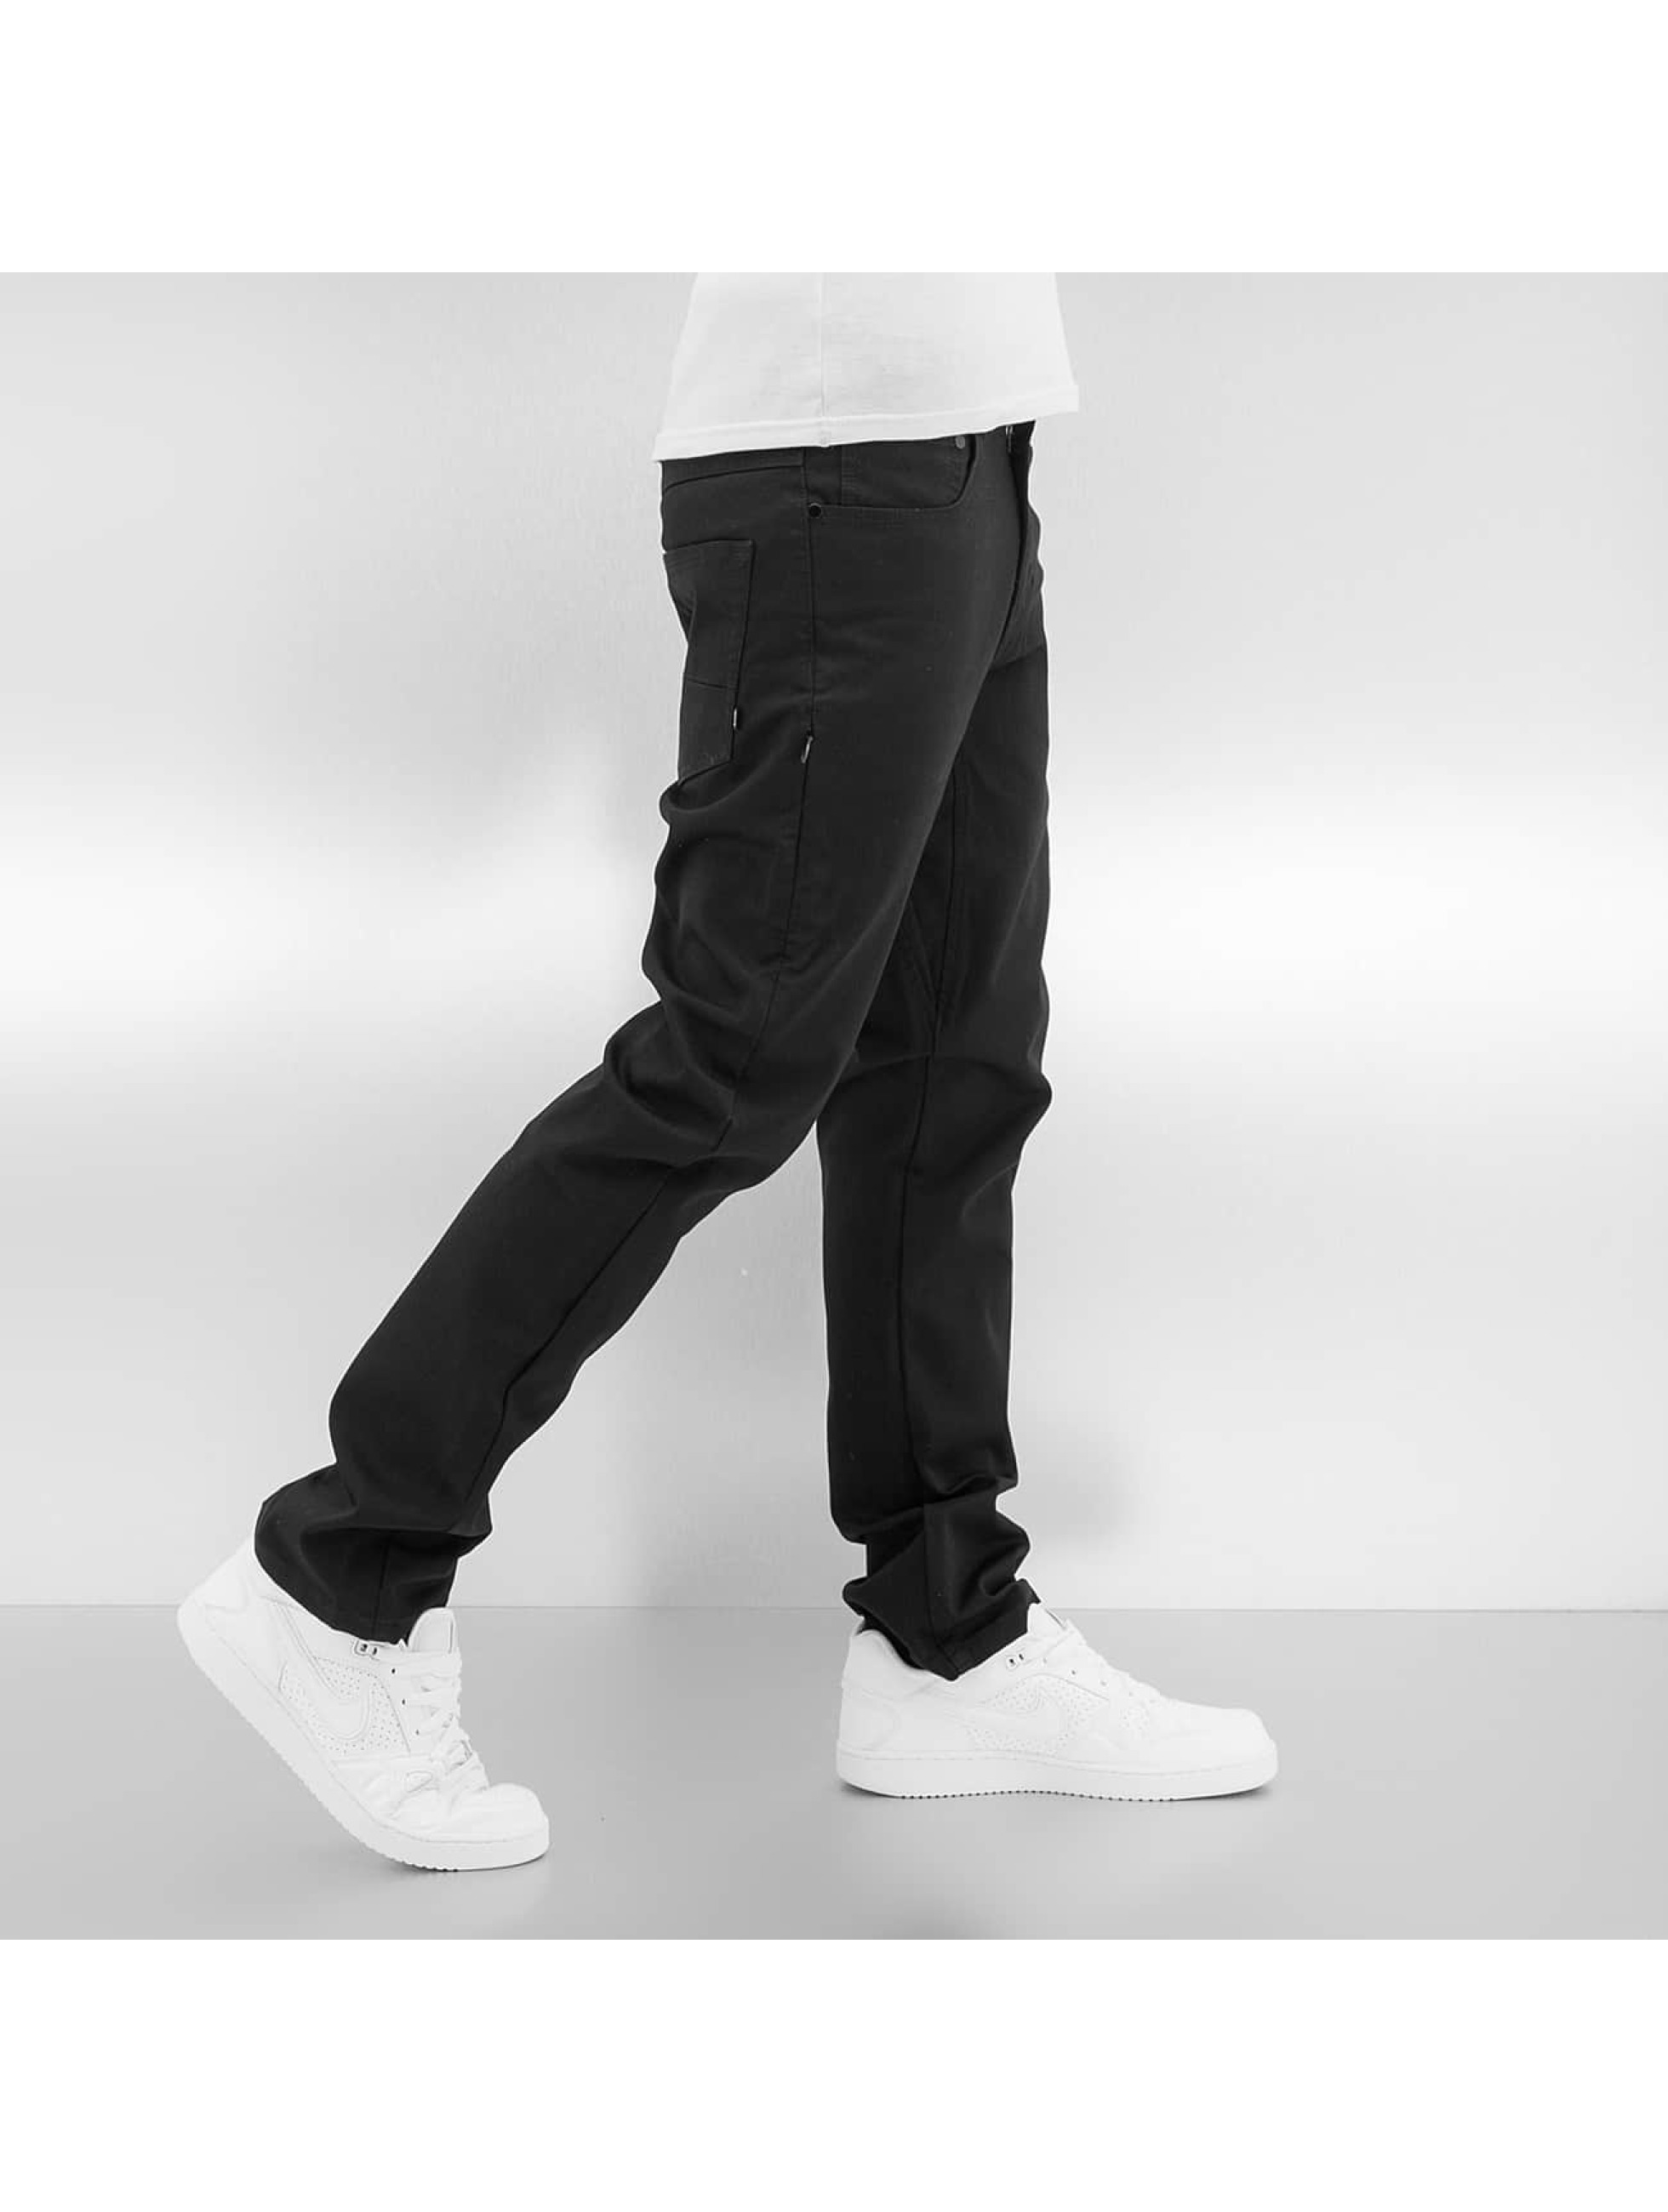 Nike SB Pantalon chino SB 5 Pocket noir